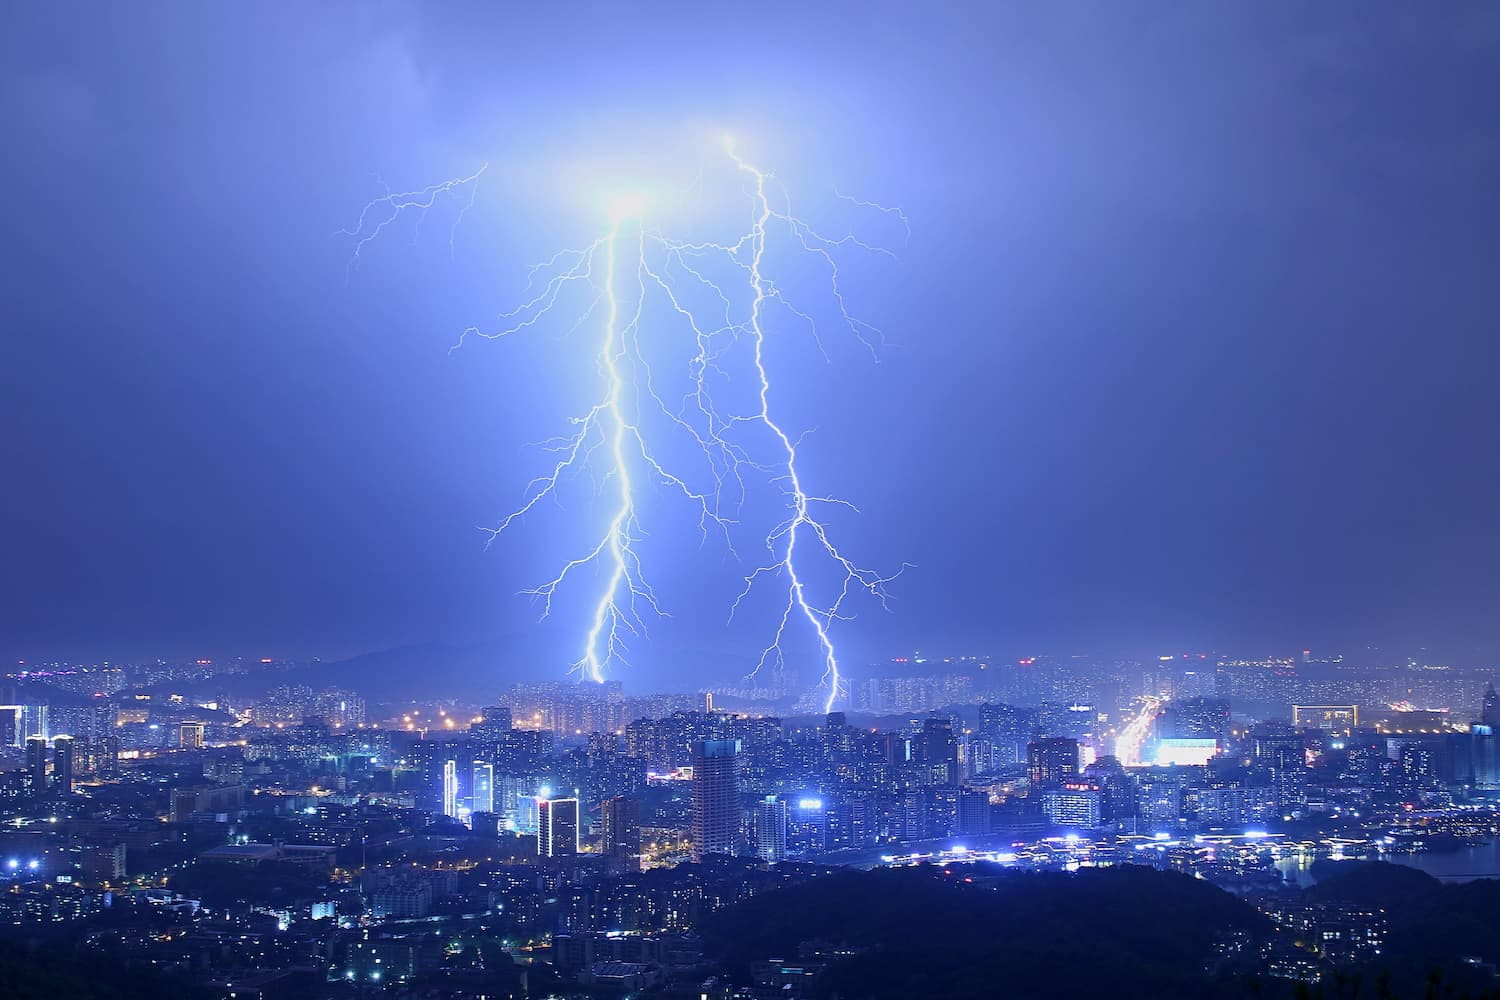 Astraphobia, fear of thunder and lightning